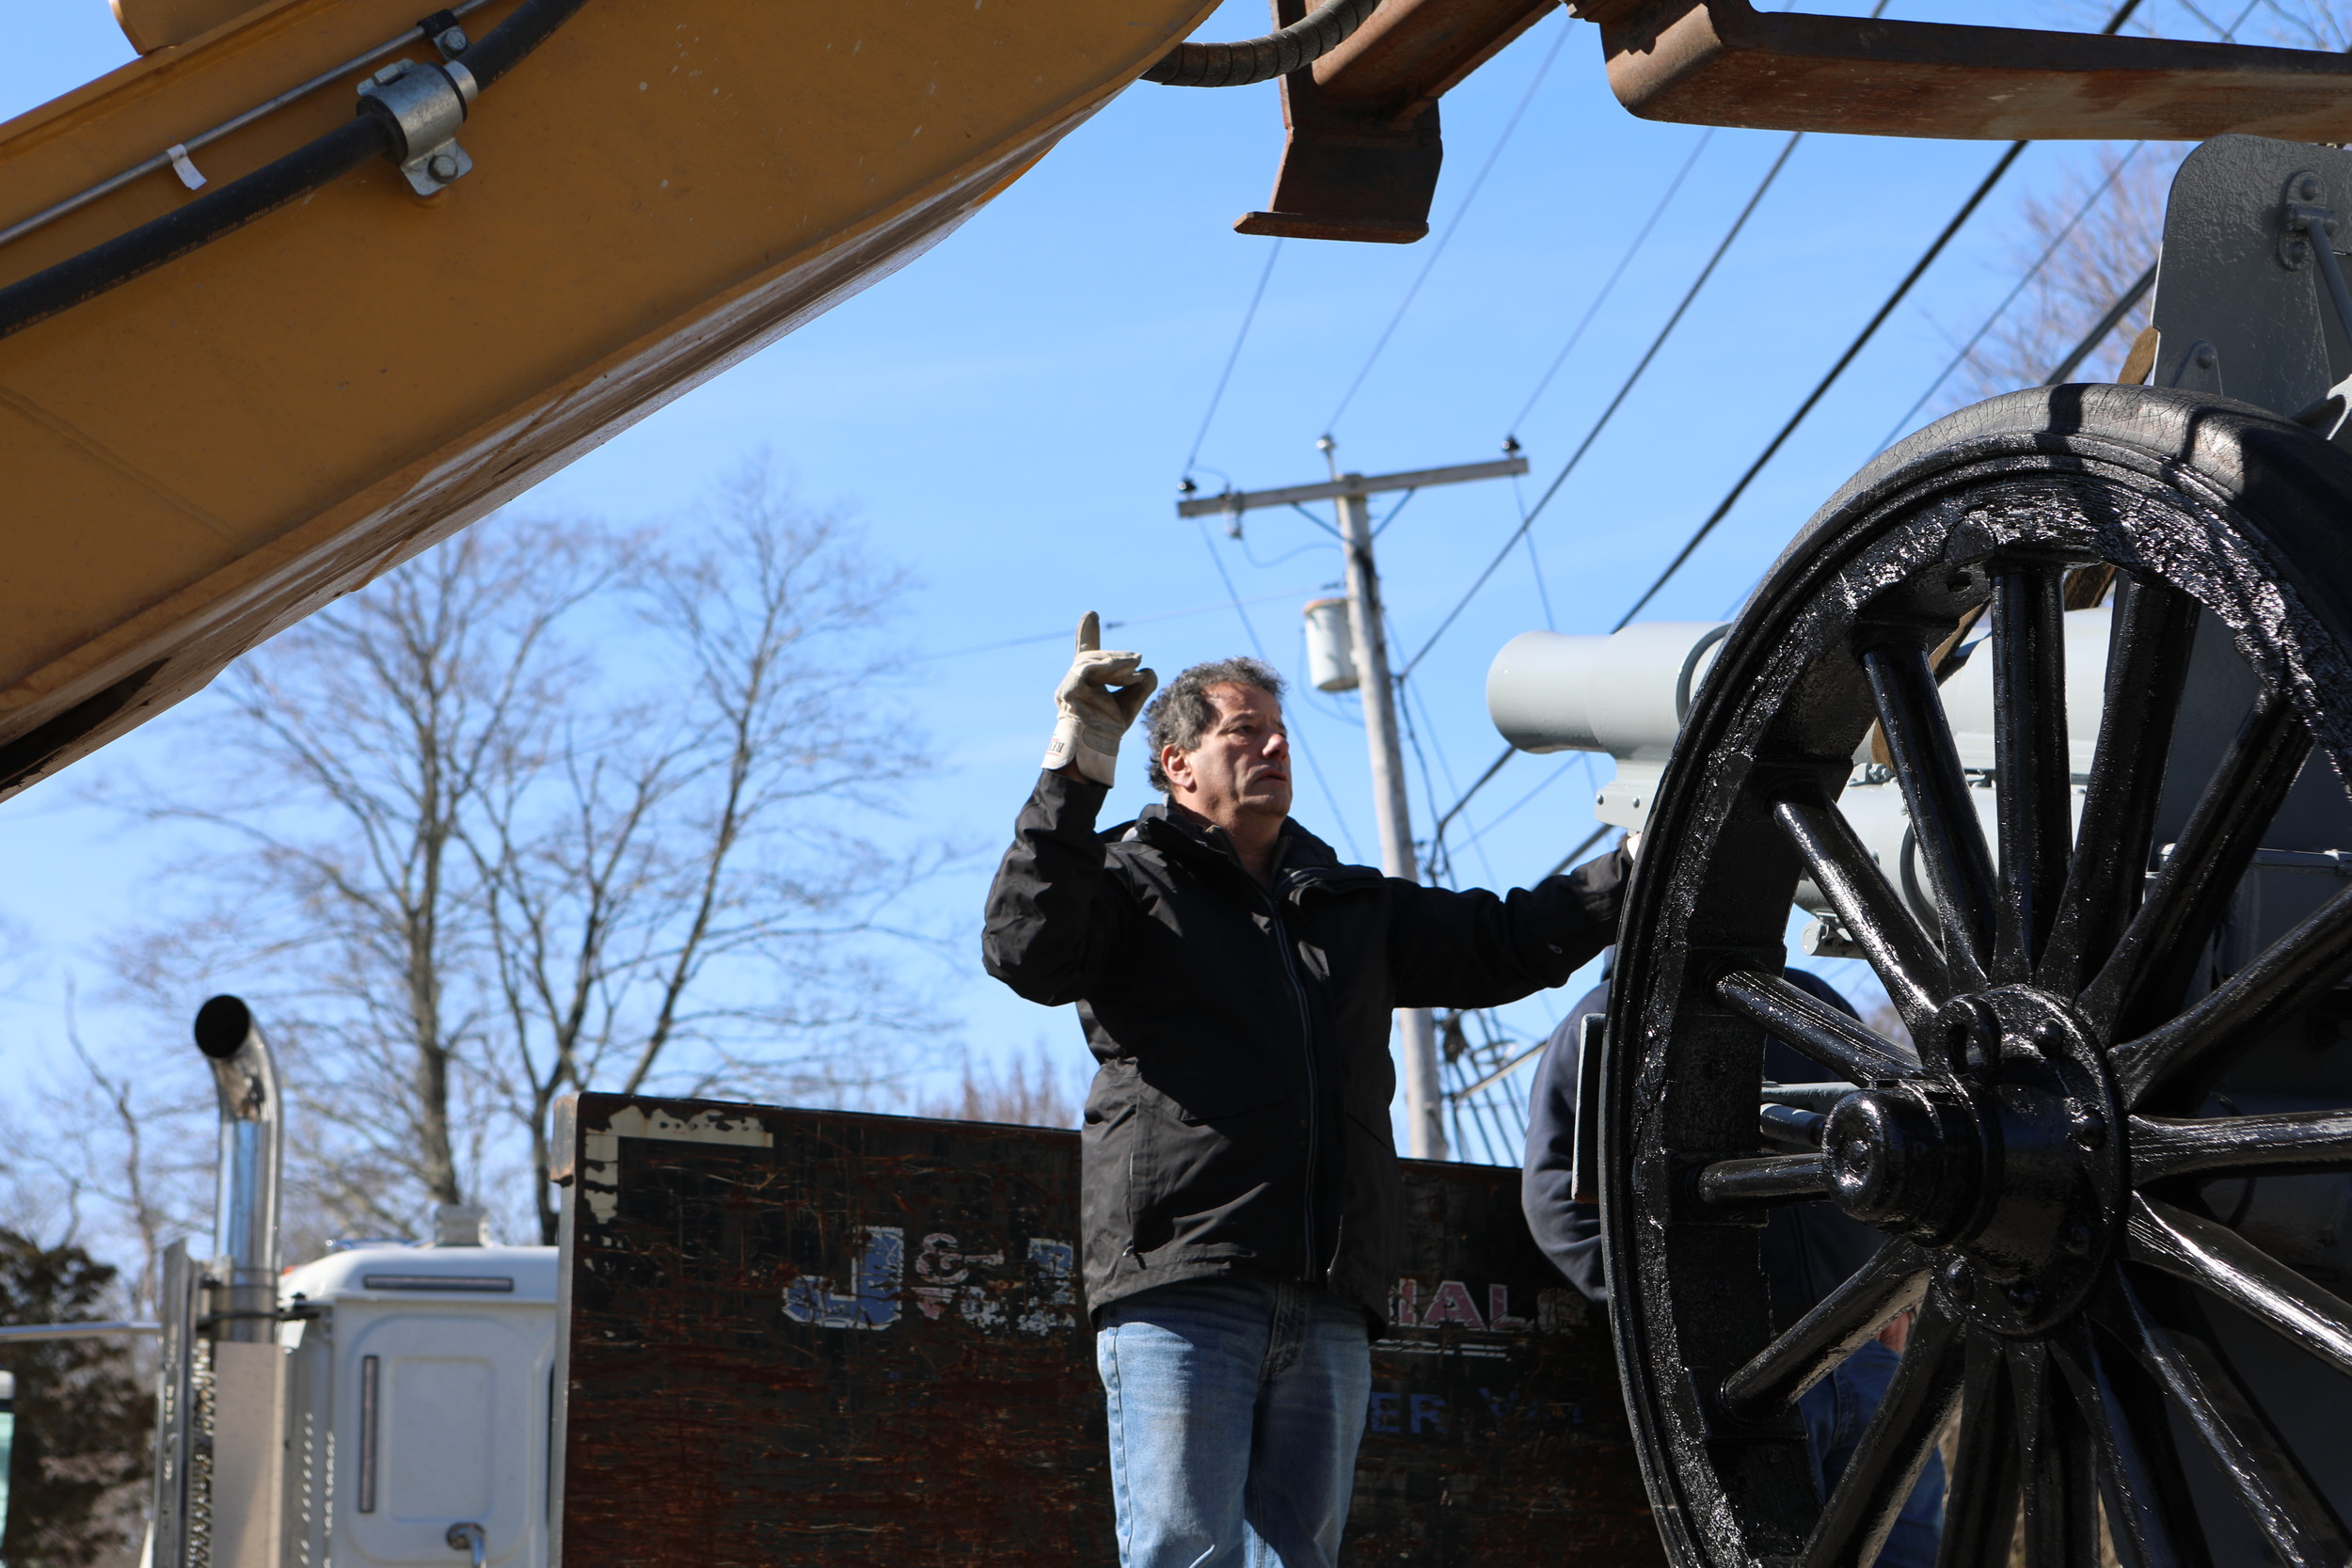 John Ferreira Sr. giving the forklift operator hand signals during the downloading of the cannon.